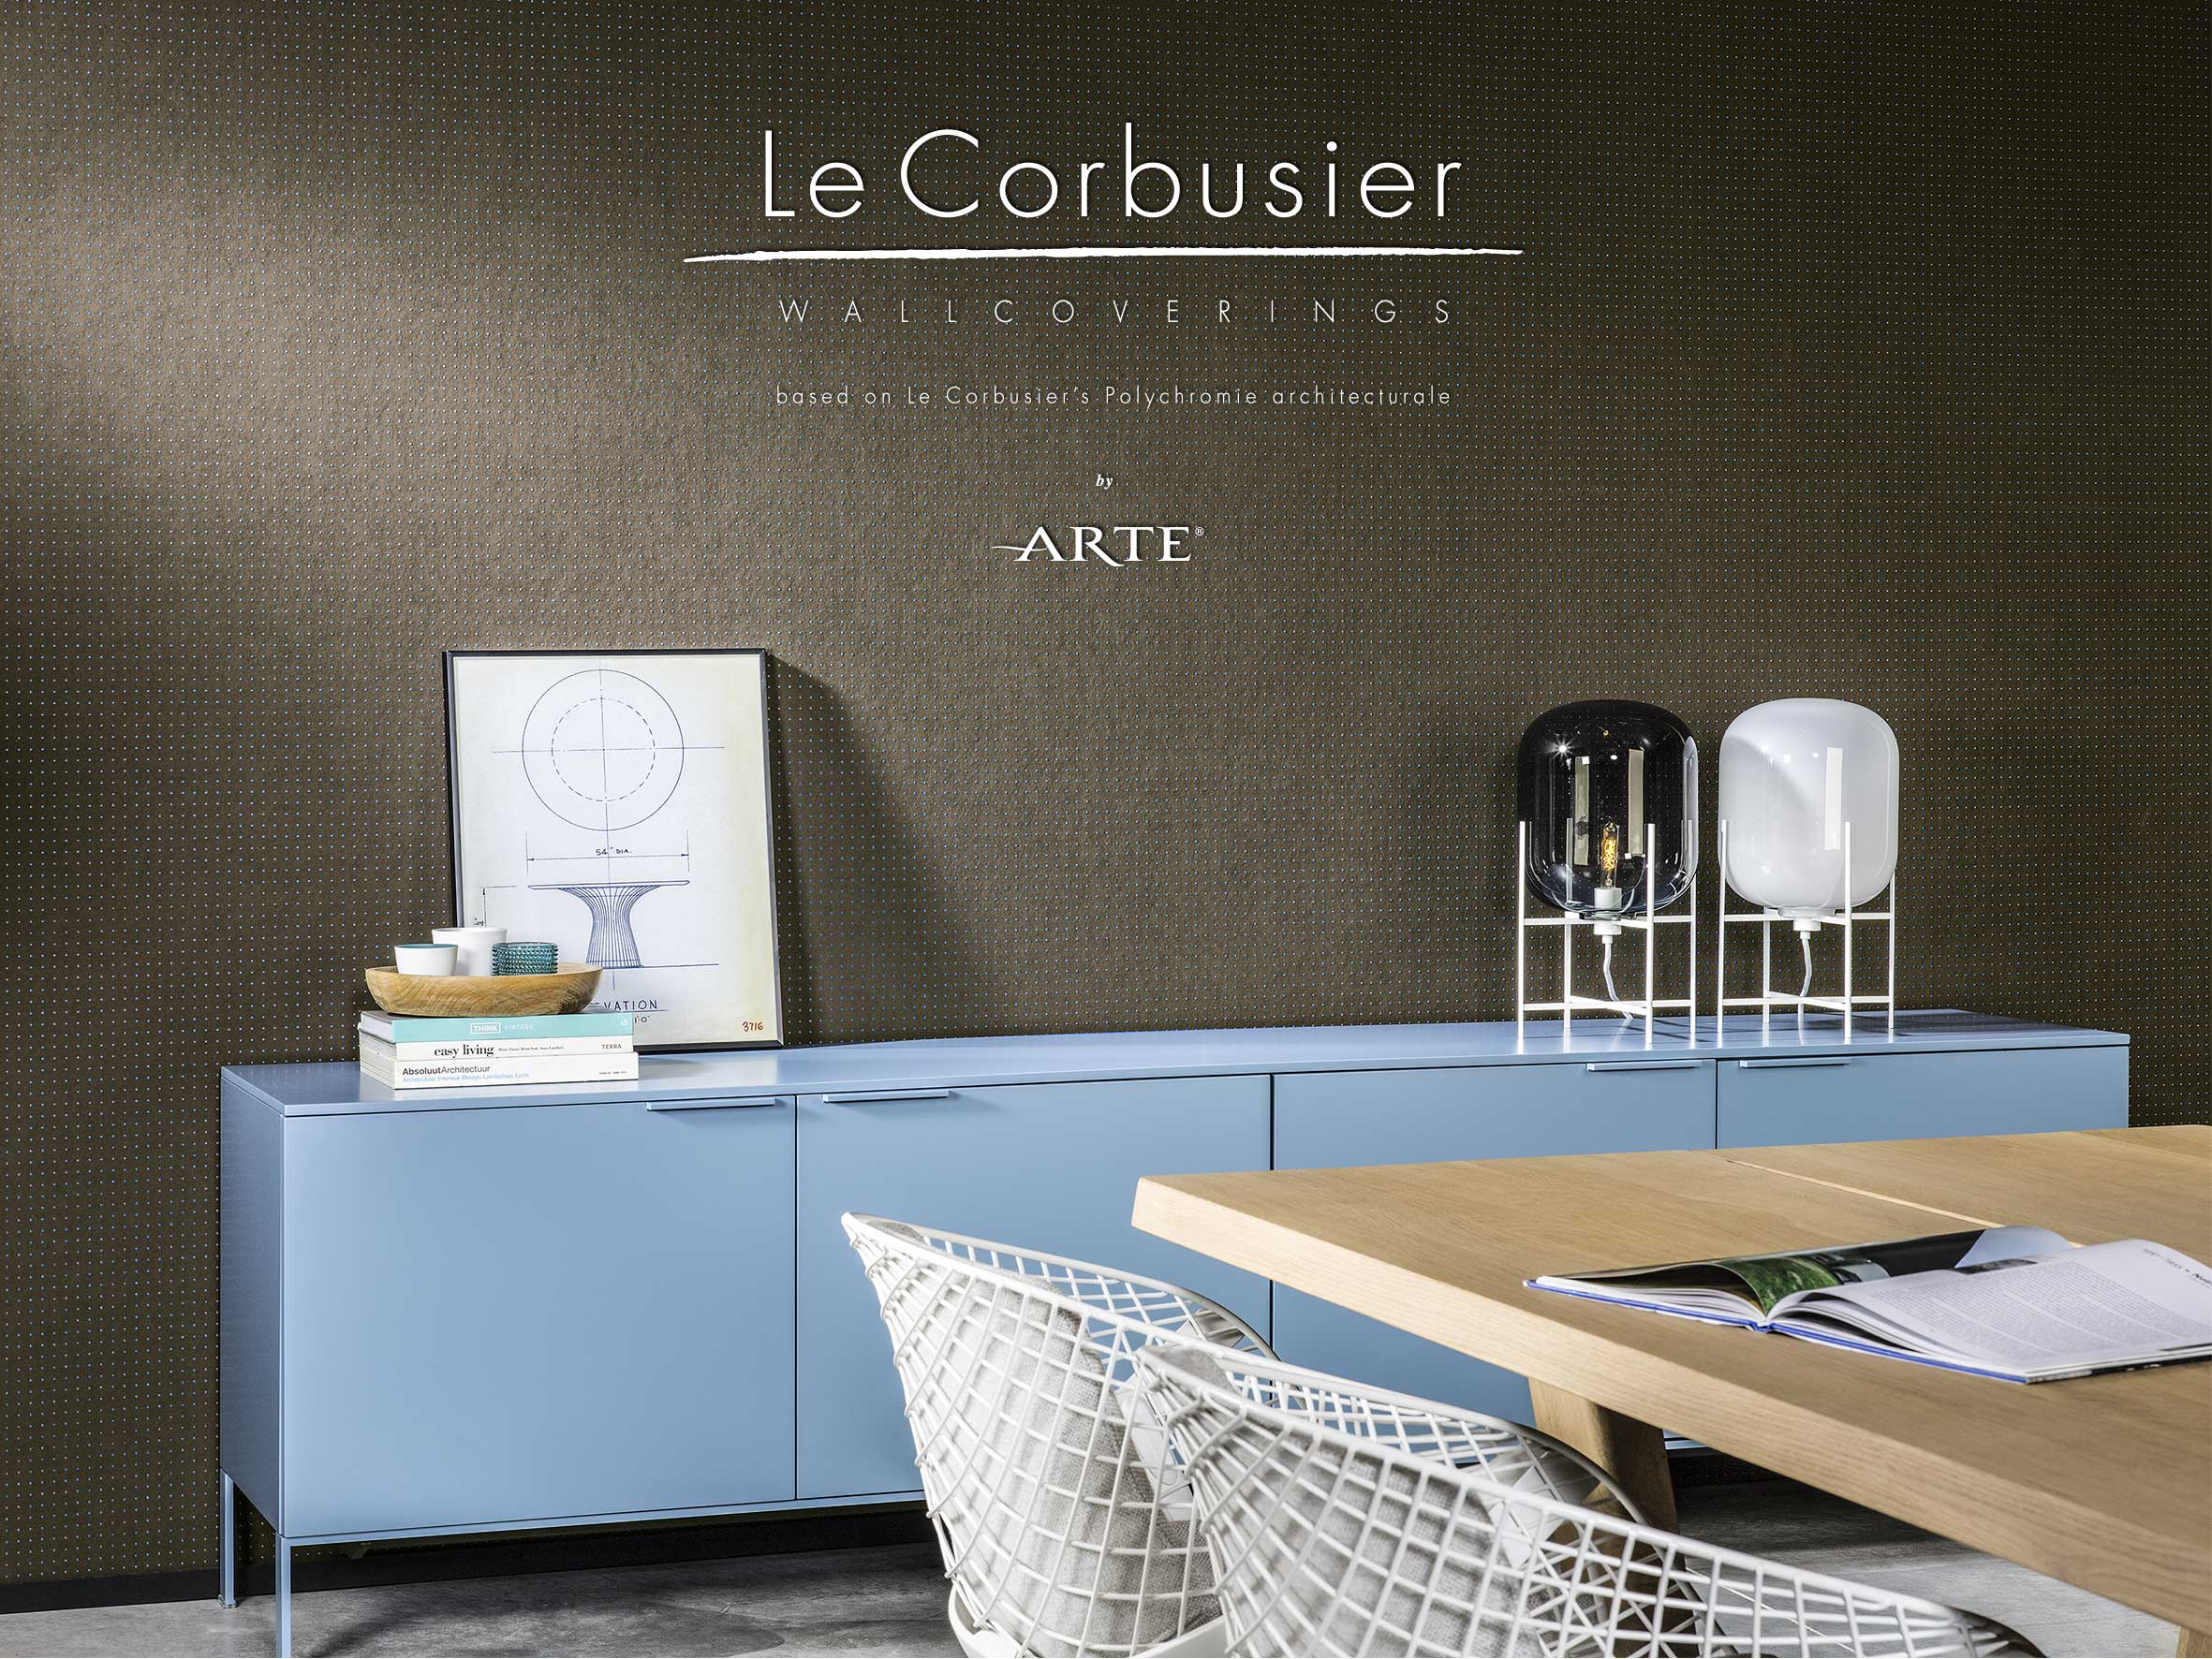 stil le corbusier tapeten design arte online kaufen. Black Bedroom Furniture Sets. Home Design Ideas